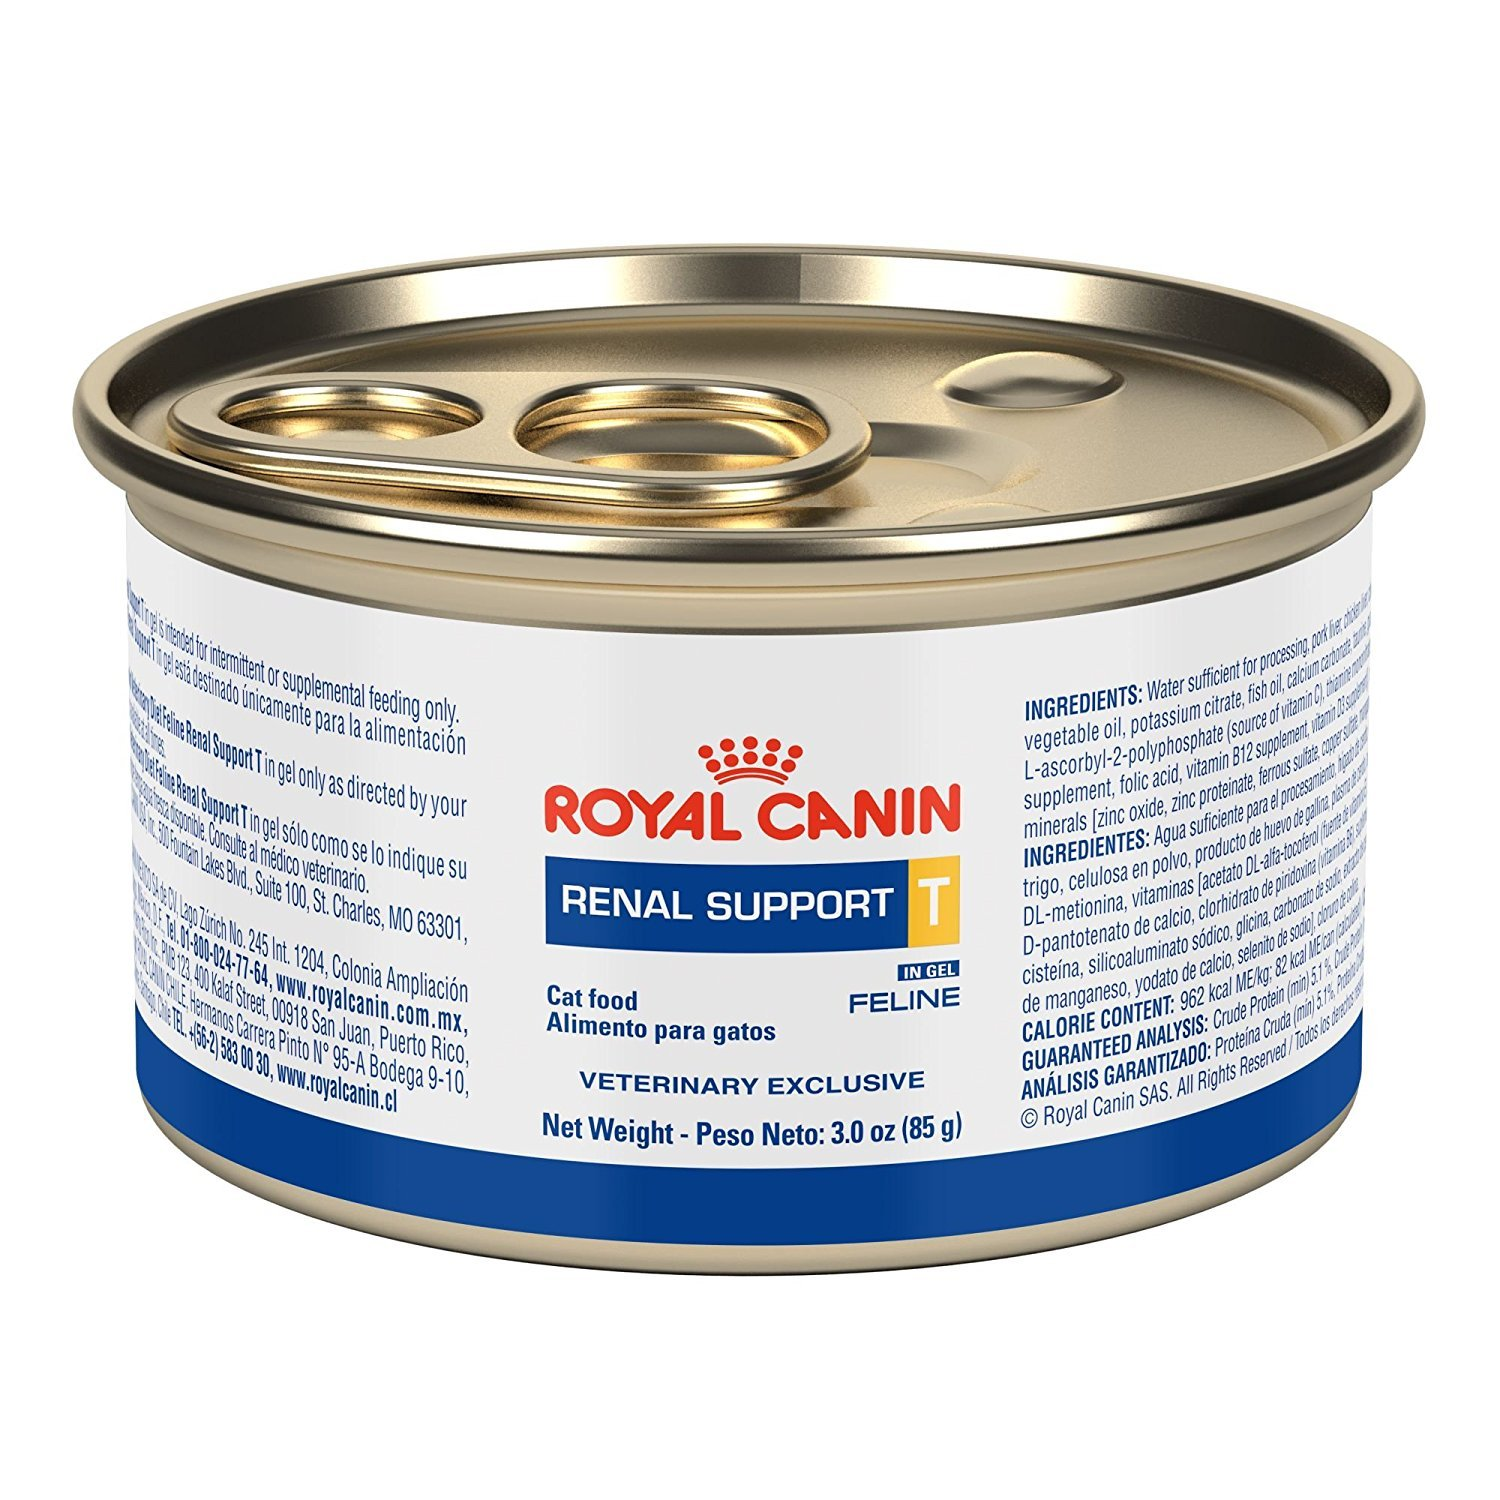 Amazon.com: Royal Canin Renal Support T SIG Canned Cat Food (24/3oz cans) by Unknown: Home & Kitchen